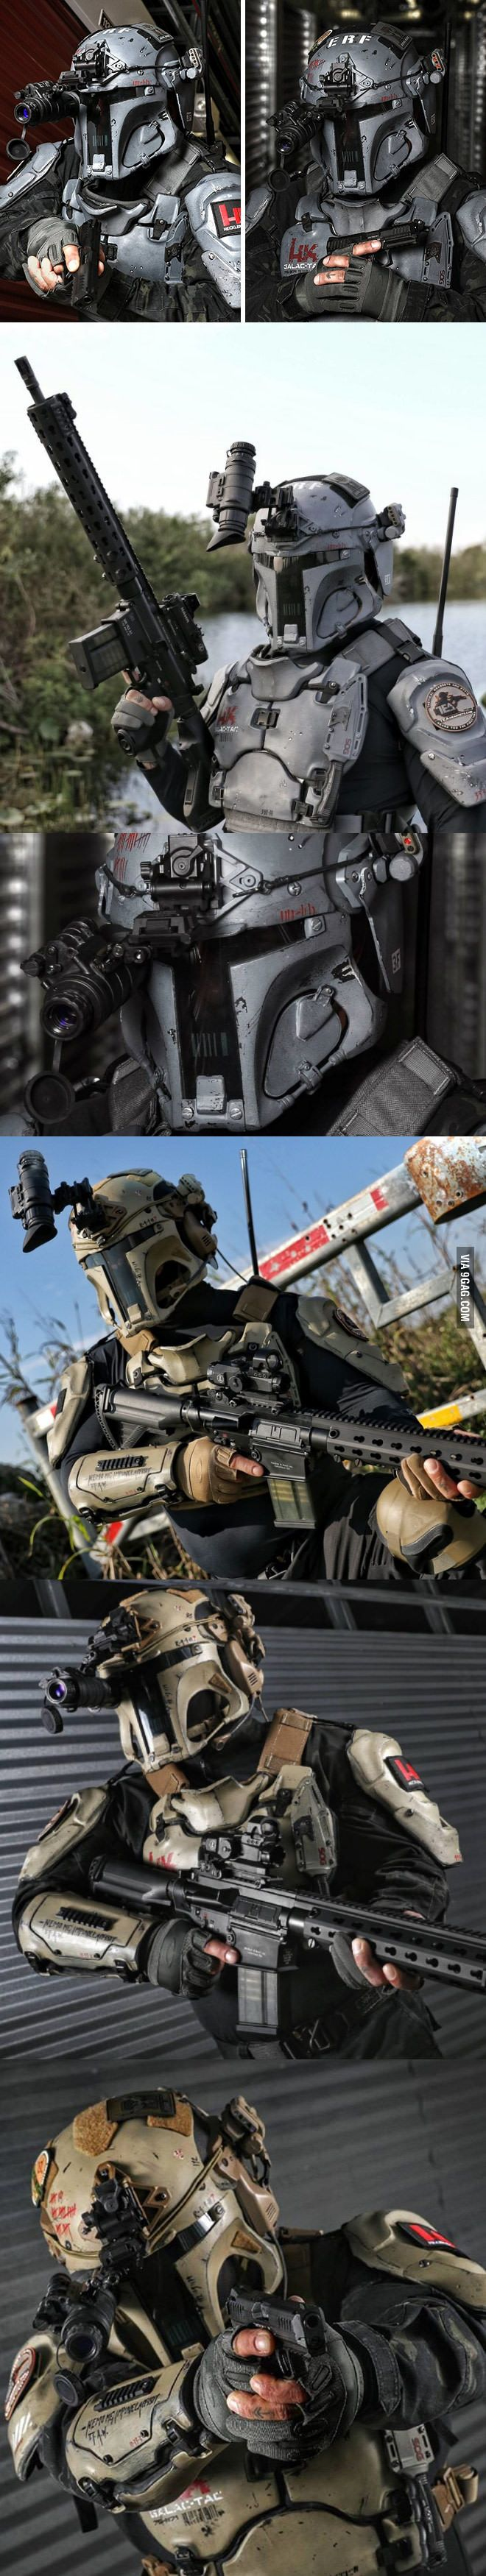 Ballistic armor company AR500 and H&K produce real life Mandalorian armour that is capable of stopping real bullets